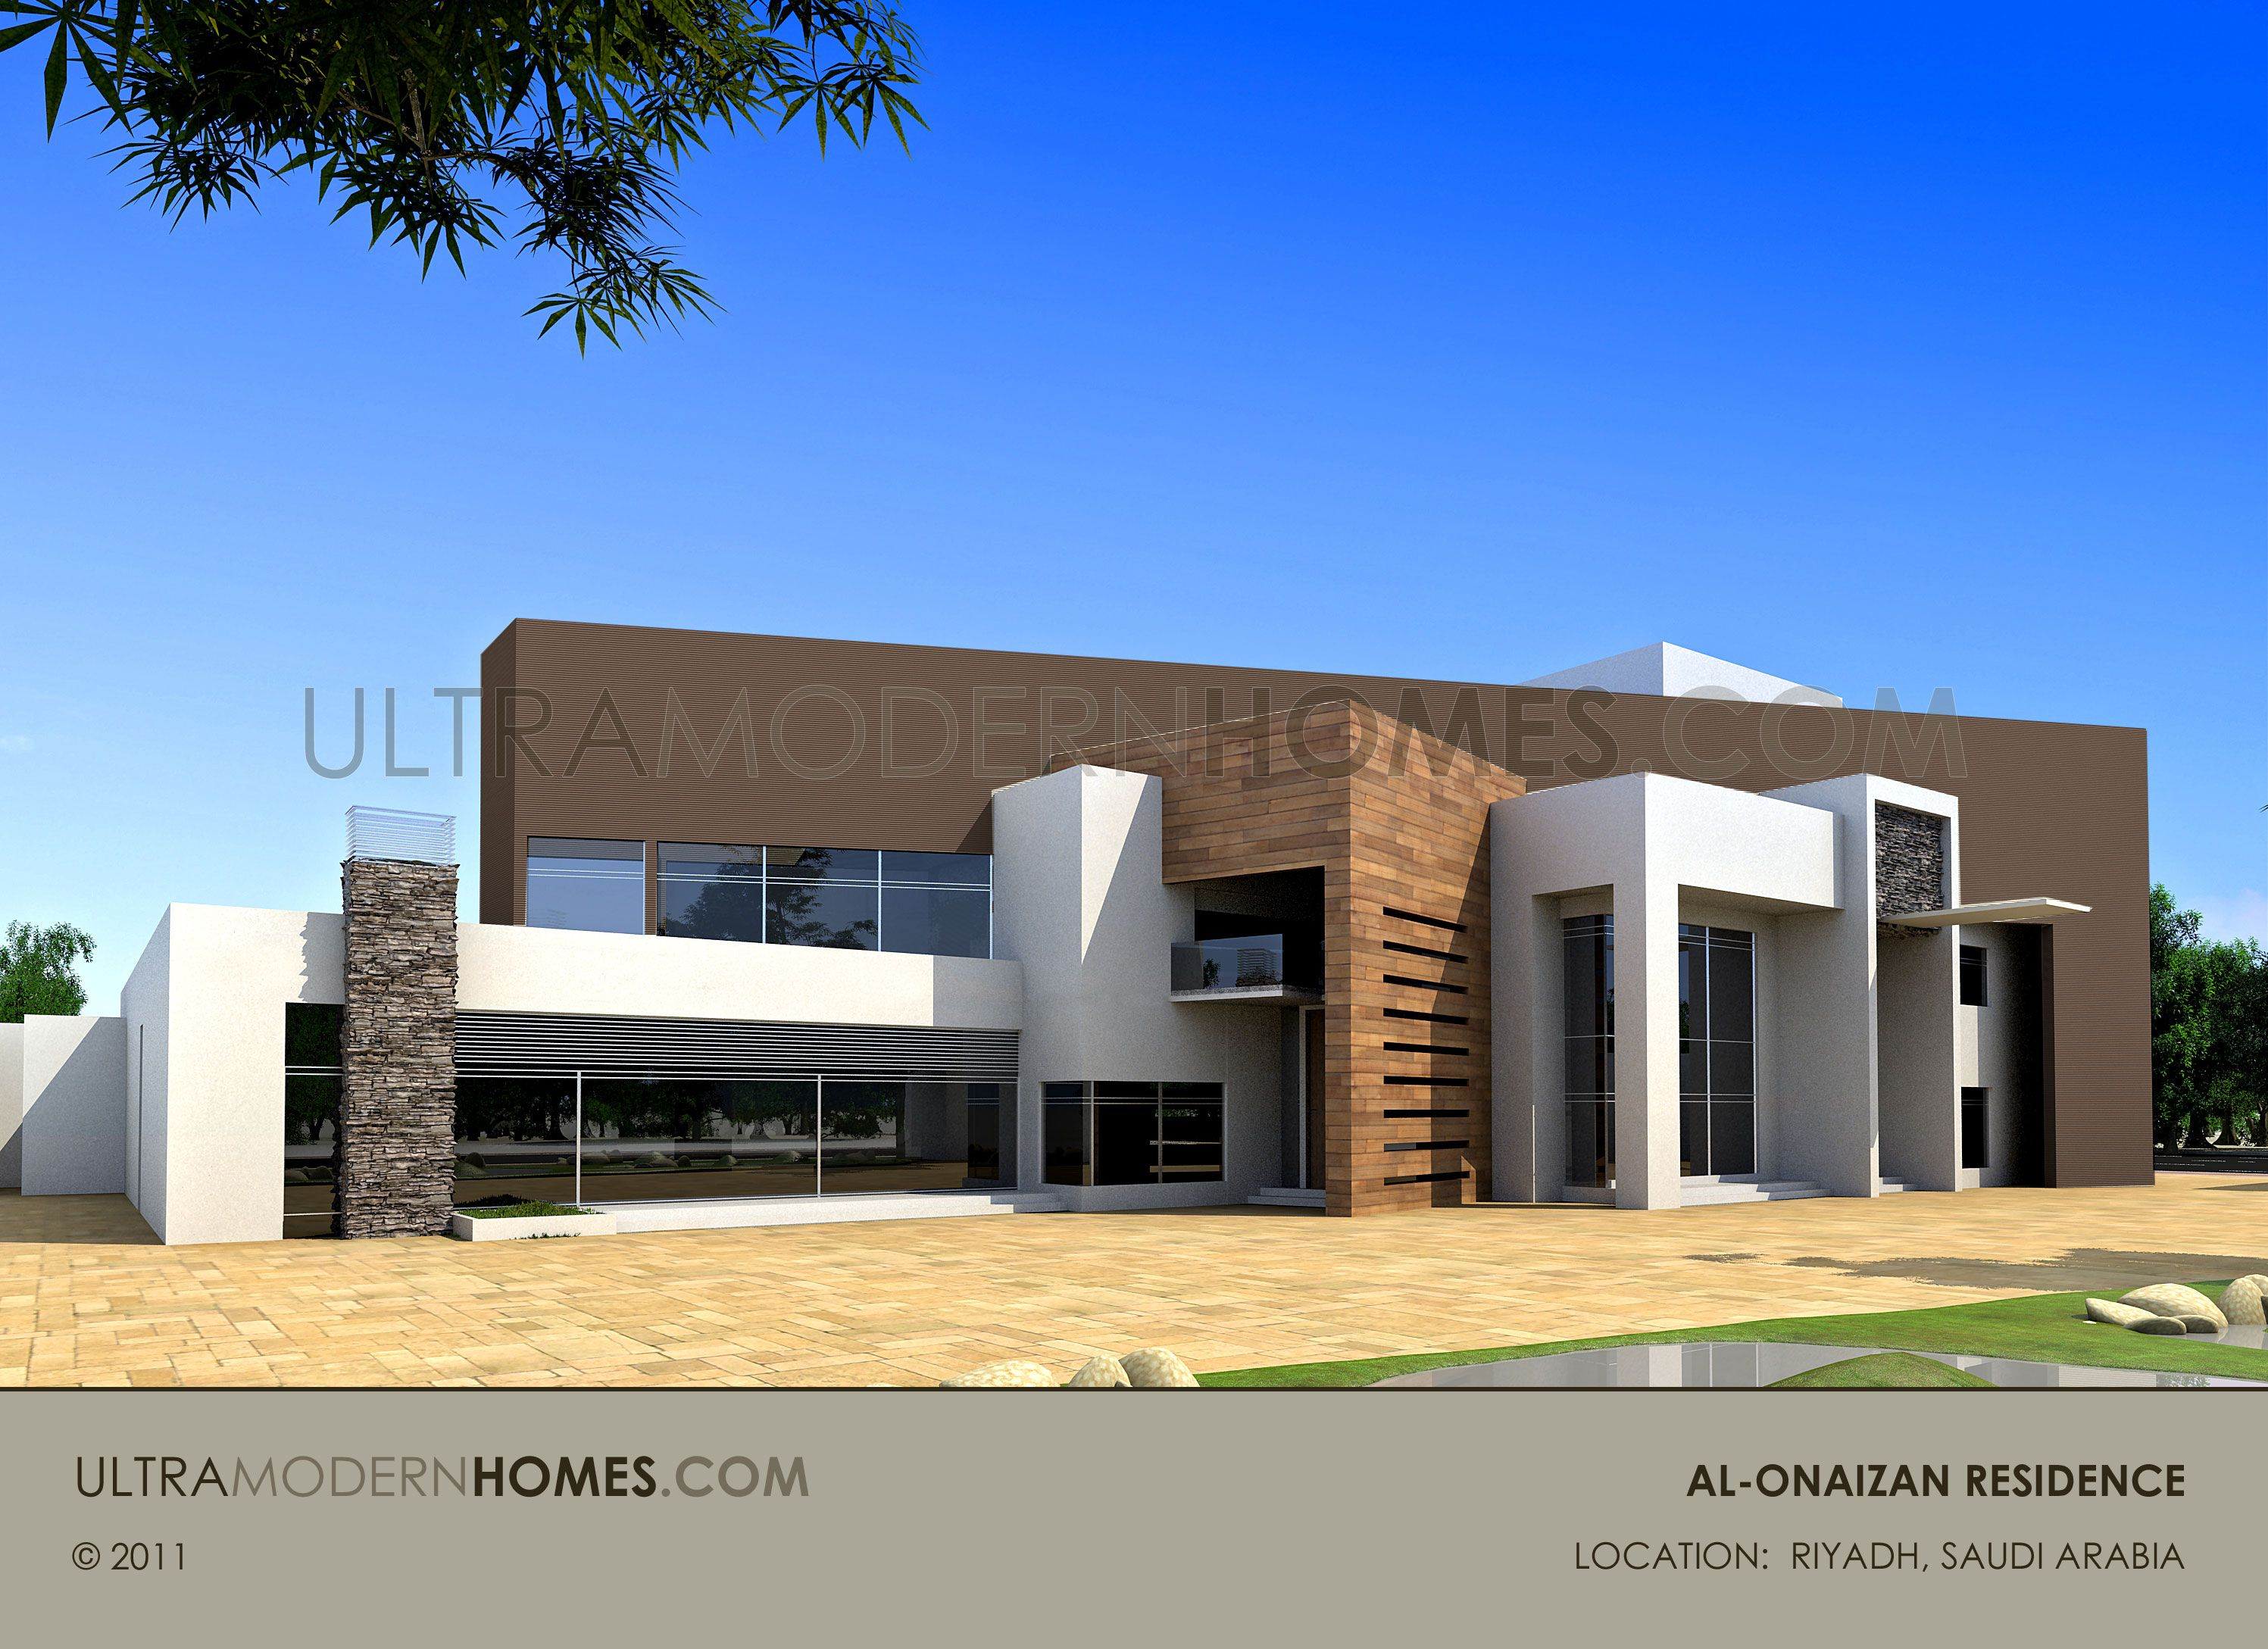 Luxury Ultra Modern custom home design in Riyadh, Saudi Arabia ...